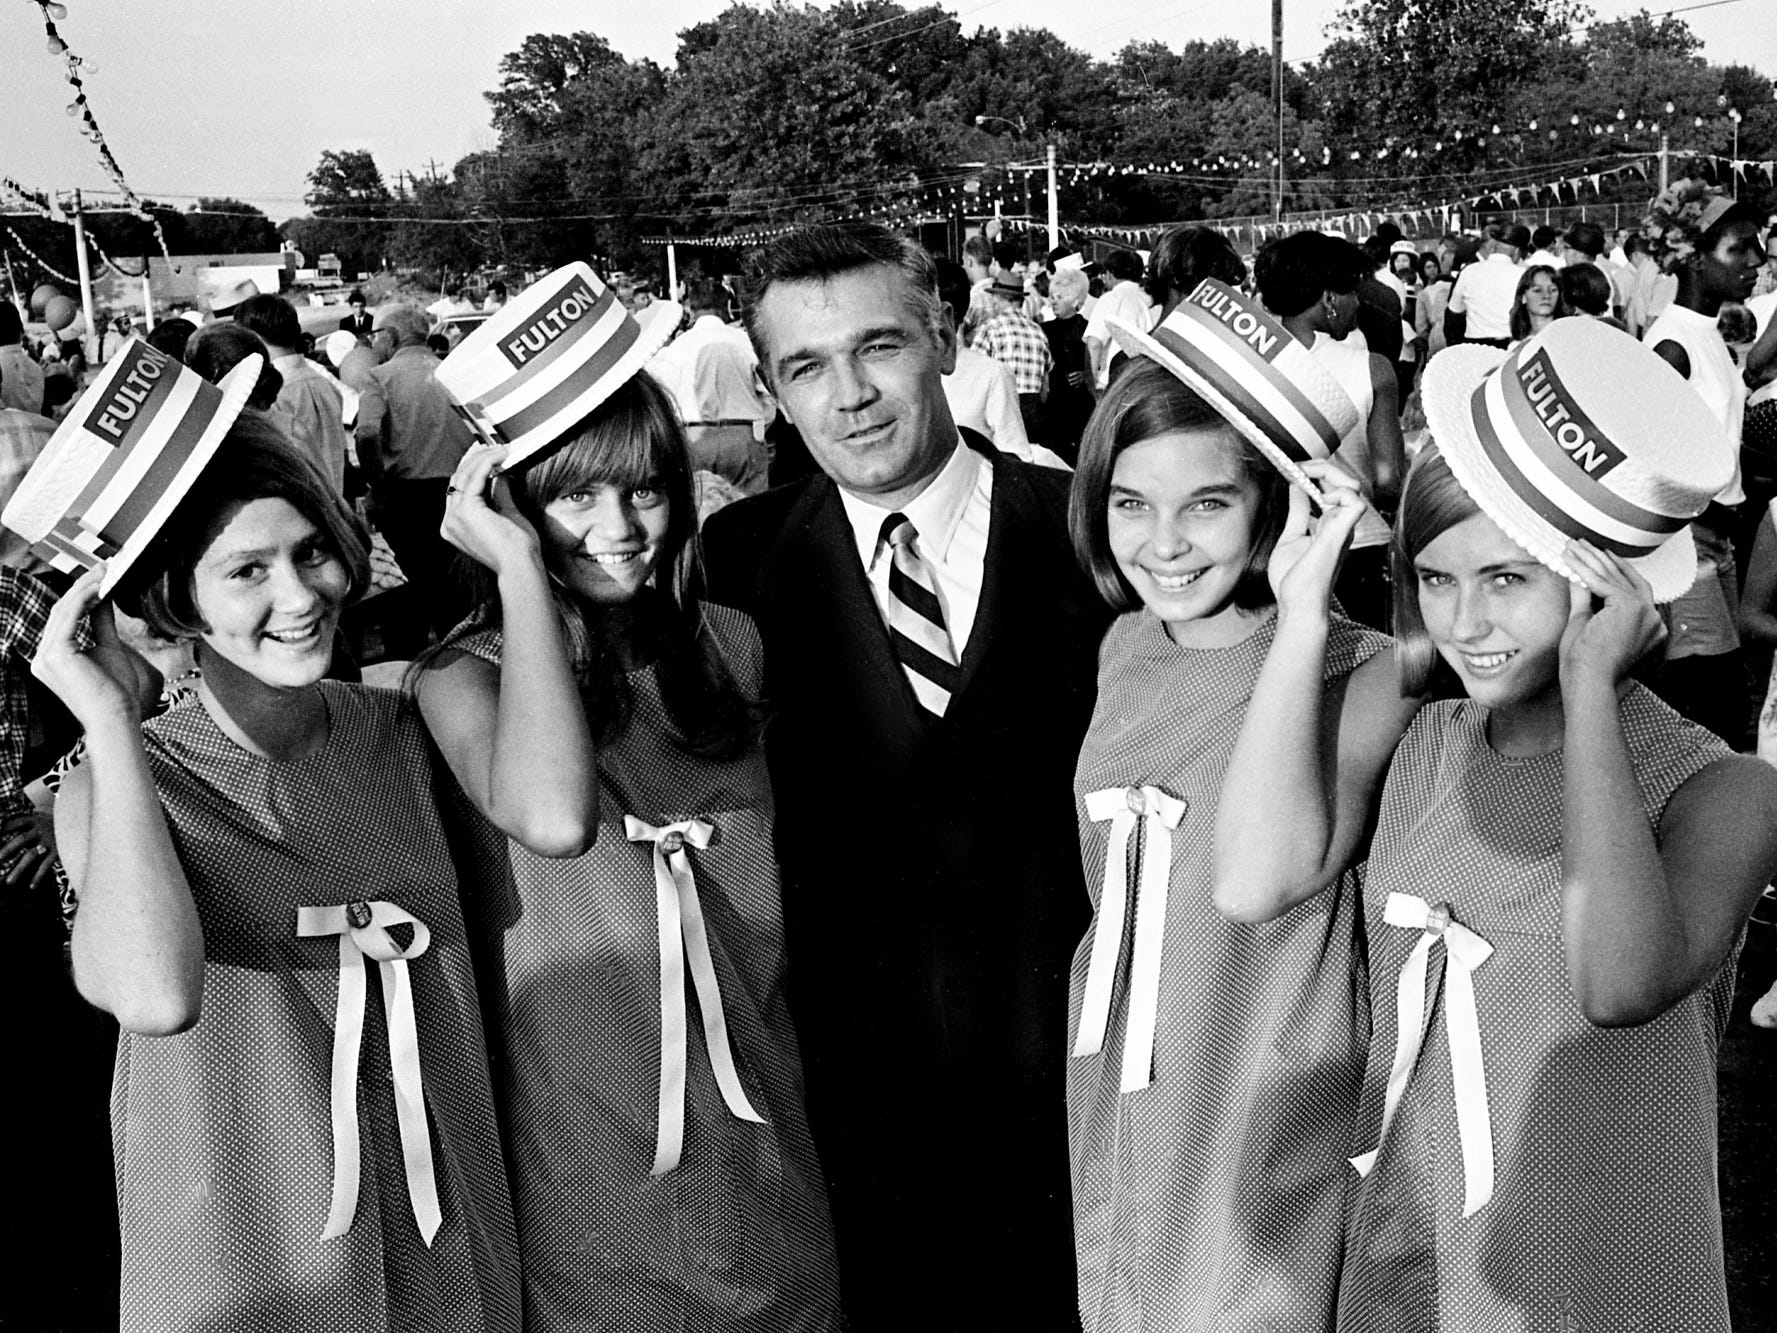 U.S. Rep. Richard Fulton talks with youthful supporters during a watermelon feast on Woodland Street on July 29, 1968. At Fulton's left is his daughter, Donna. Others are, from left, Beverly Kirkwood, Sherry Green and Janis Ball, all Stratford High students.